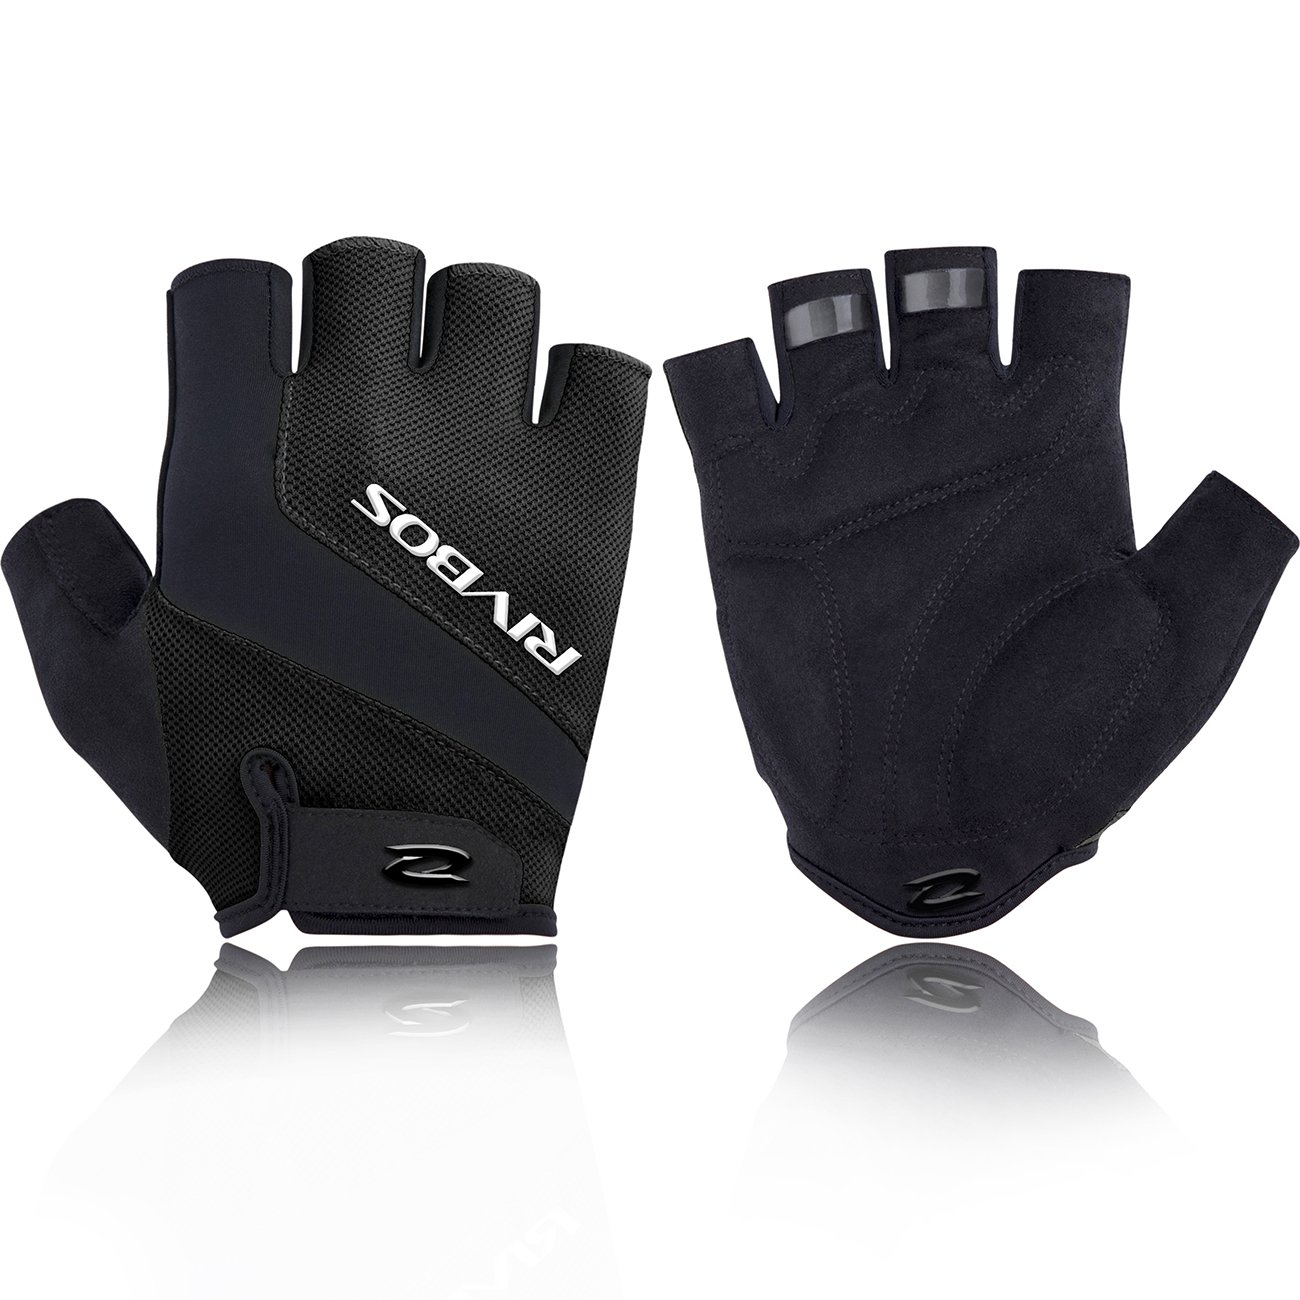 RIVBOS Motorcycle Bicycle Mountain Bike Gloves for Men Women Cycling Riding Driving Sports Outdoors Exercise with Fingerless Fashion Design Foam Padding Breathable Mesh CHG001